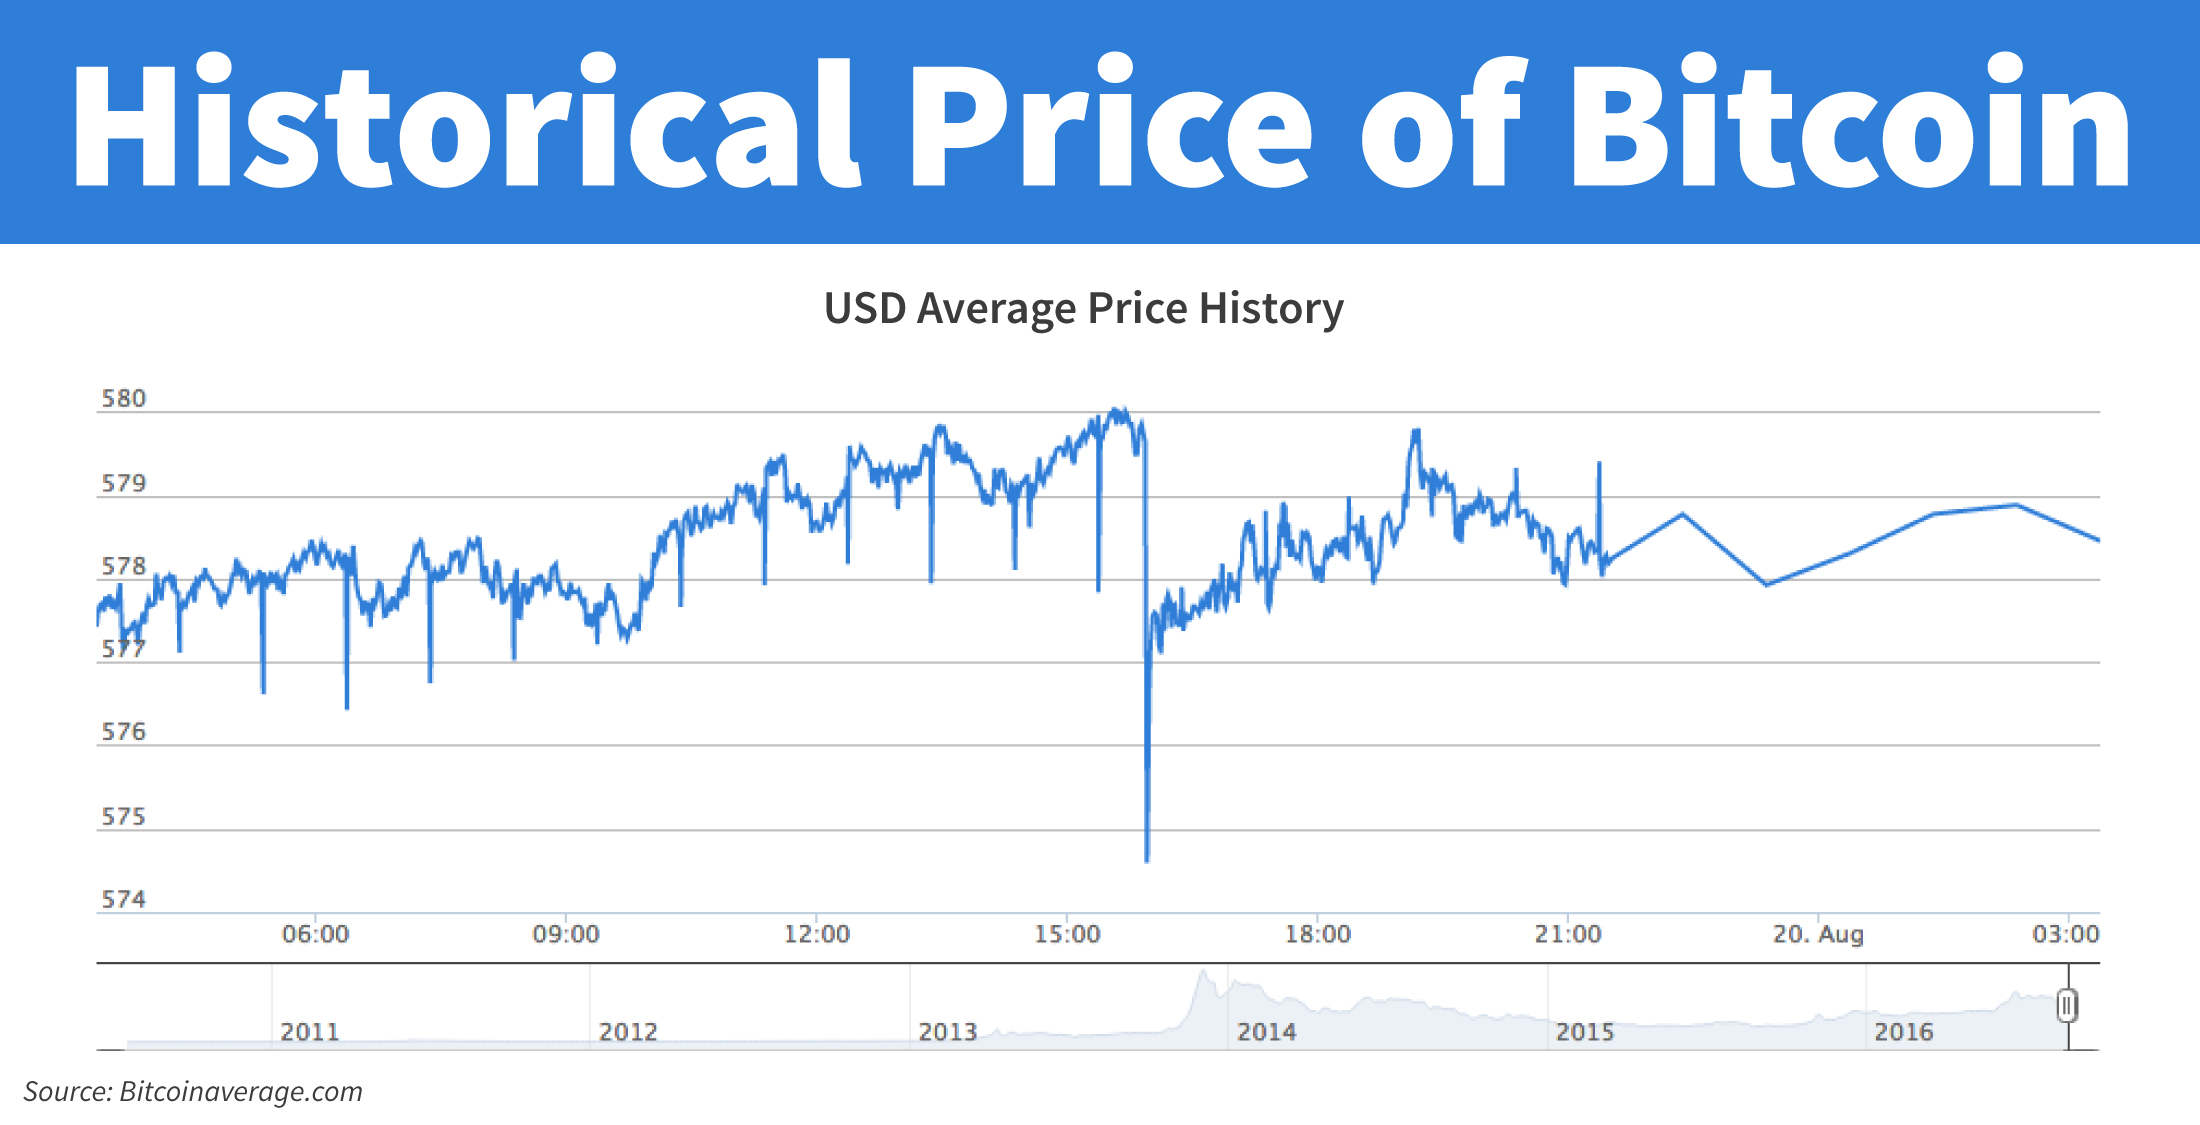 Historical price of Bitcoin